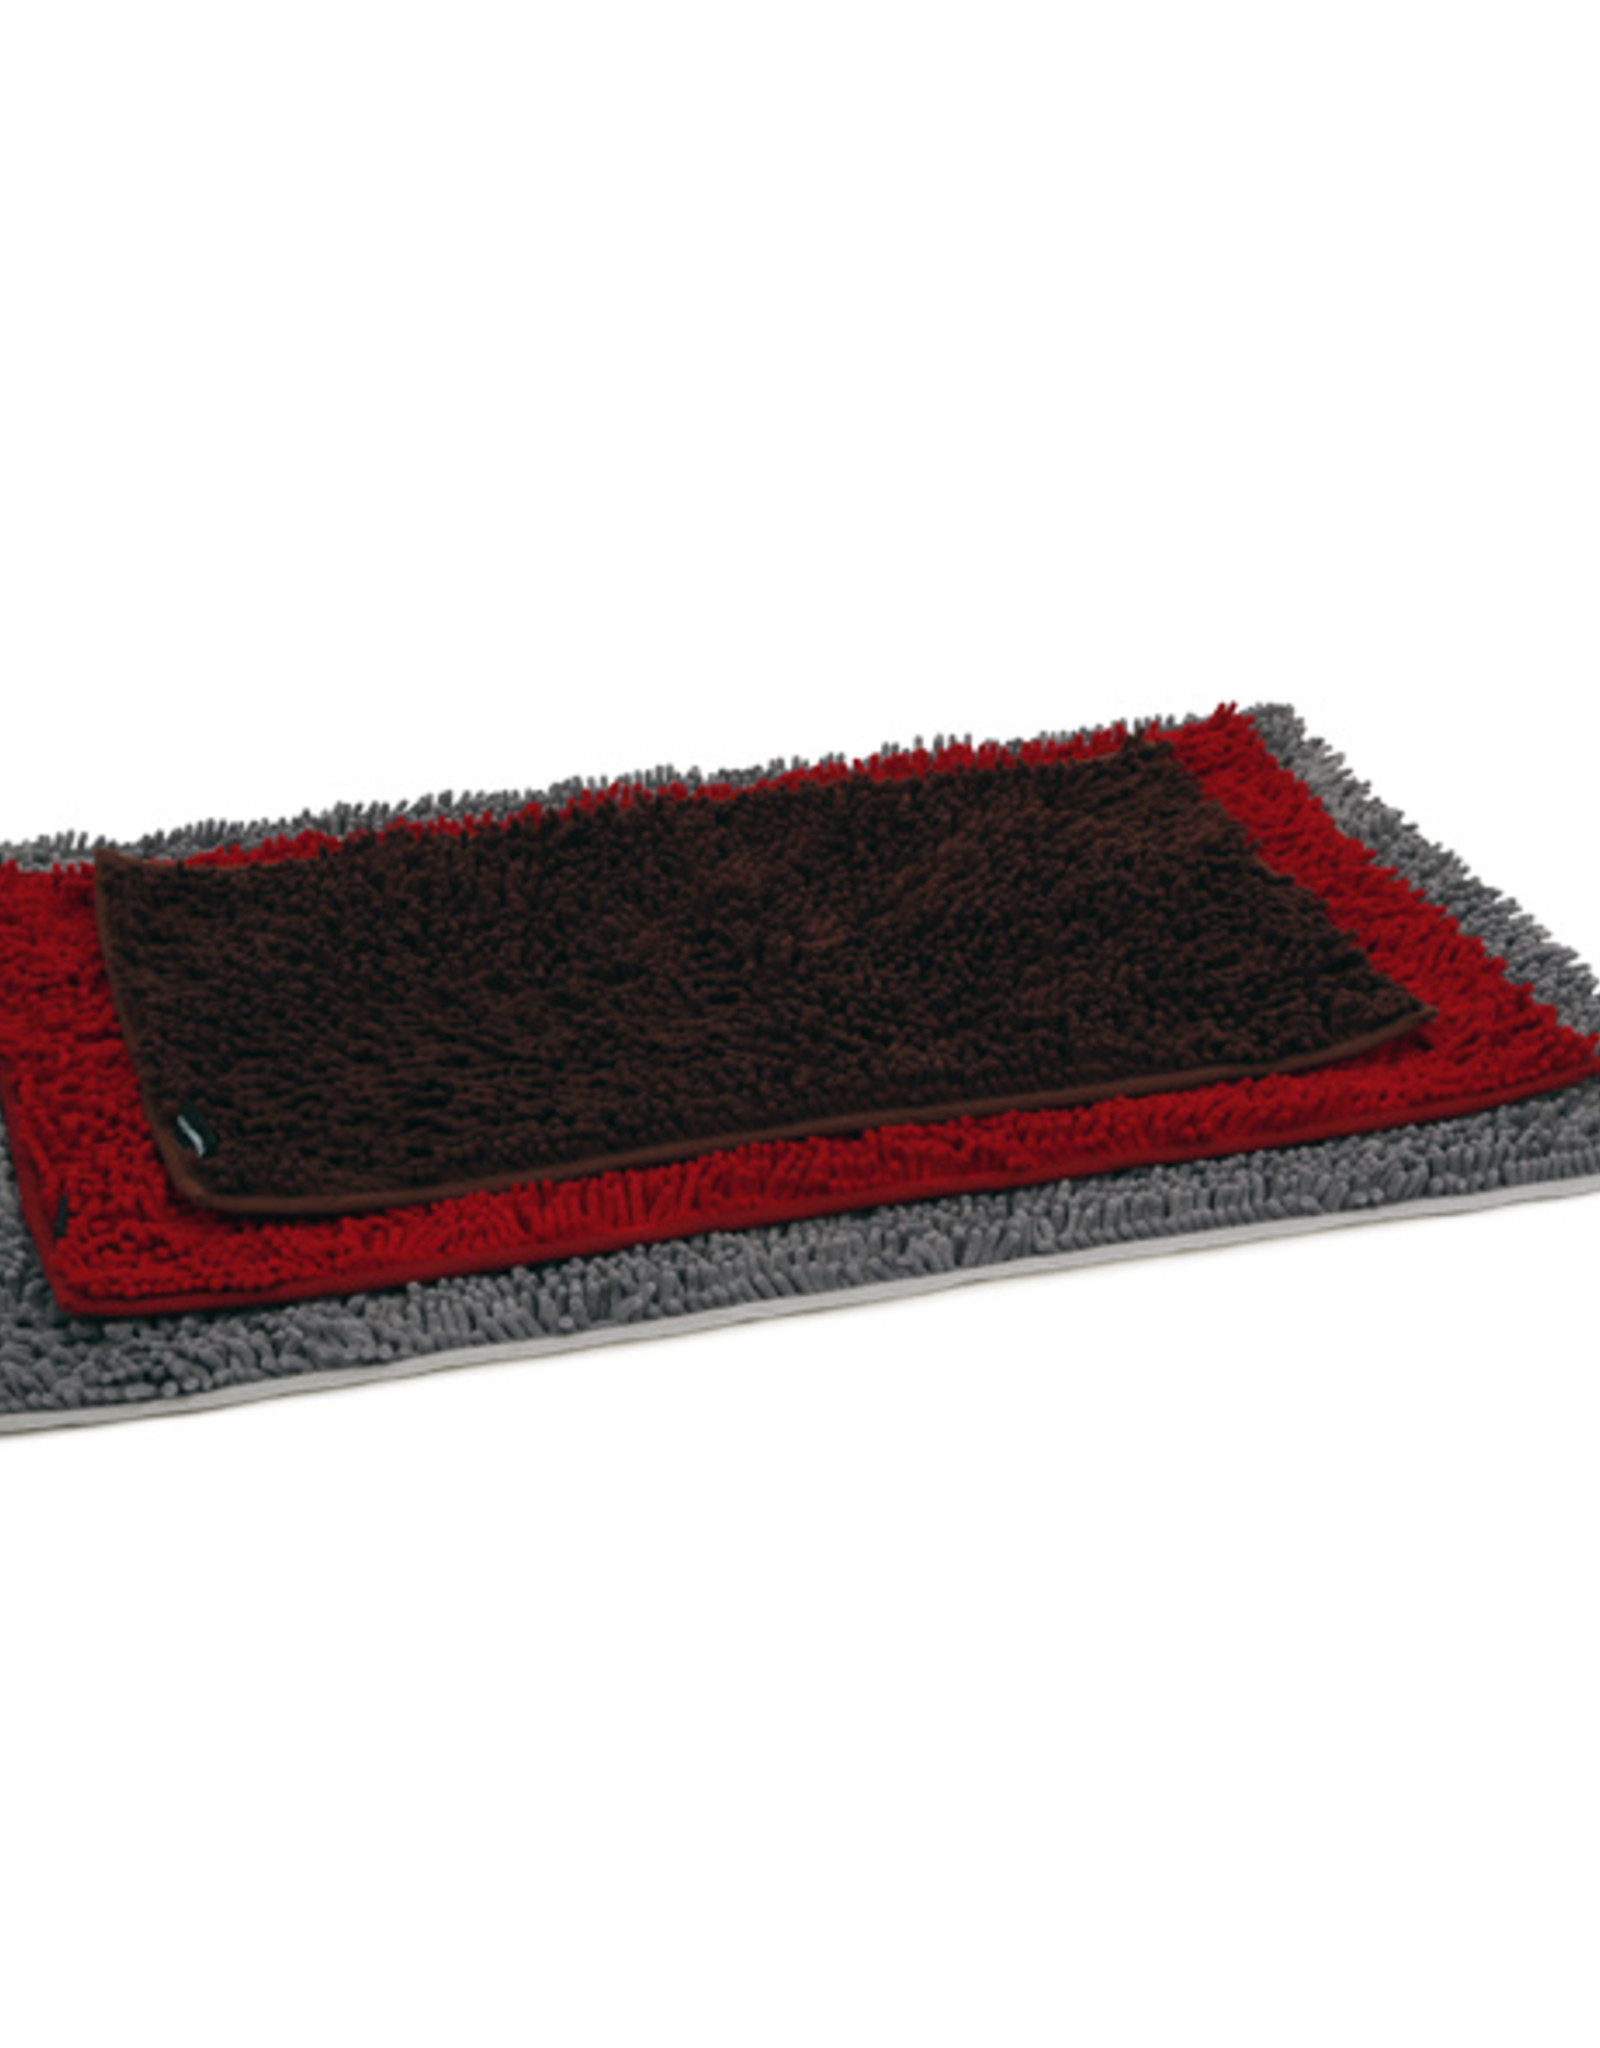 51 Degrees North clean & dry bench mat